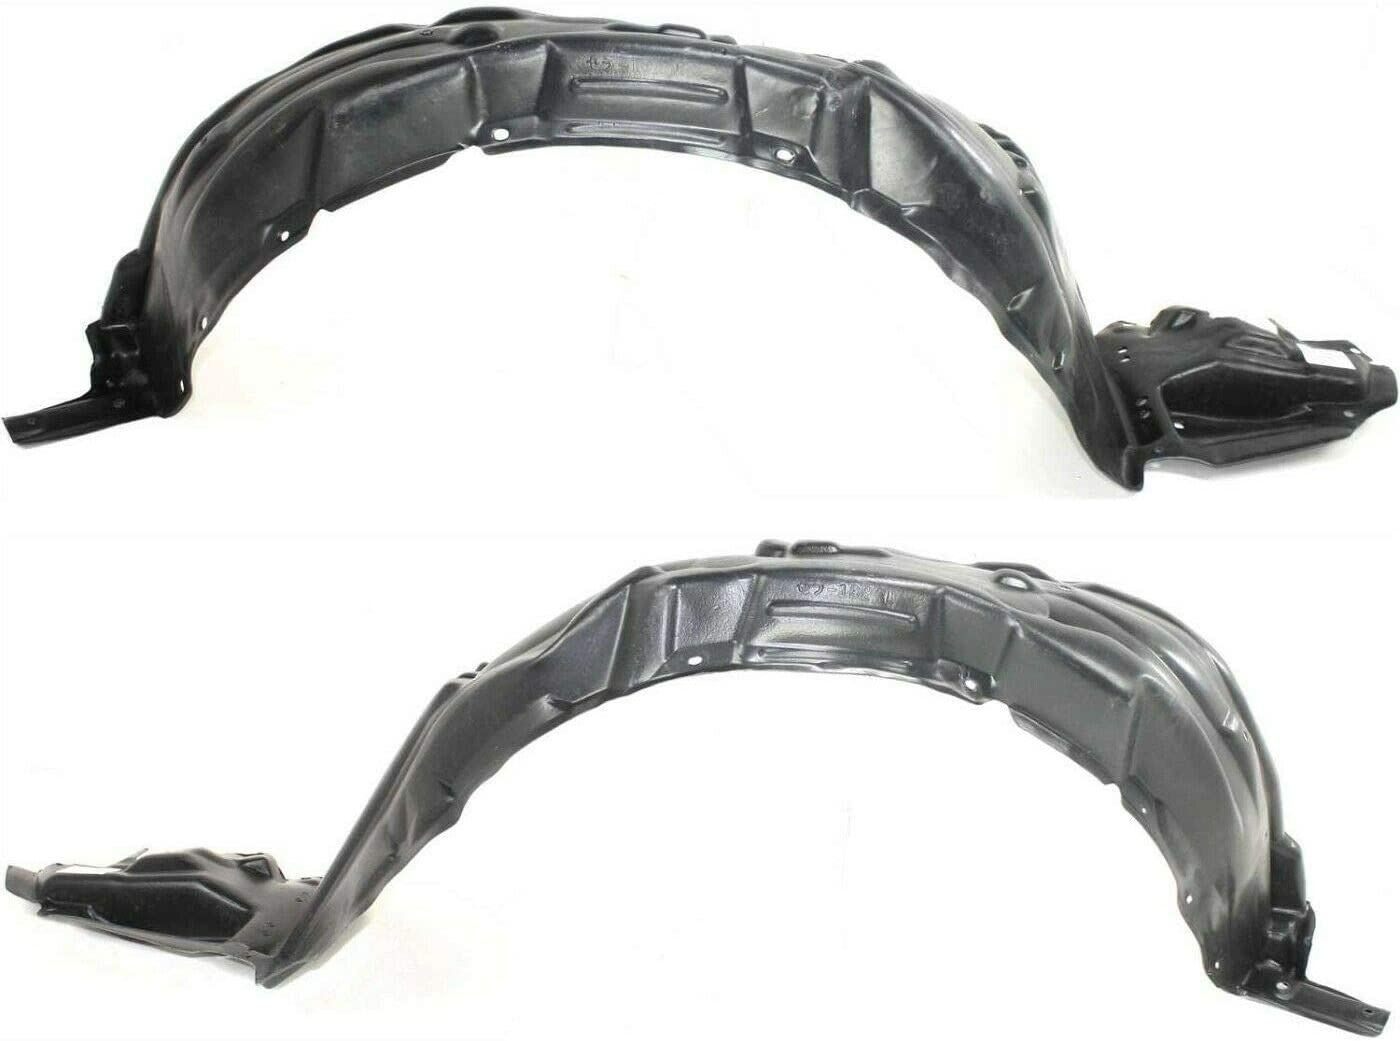 Financial sales sale NEW Splash Guards Mud Flaps Replacements with Compatible Surprise price Shield